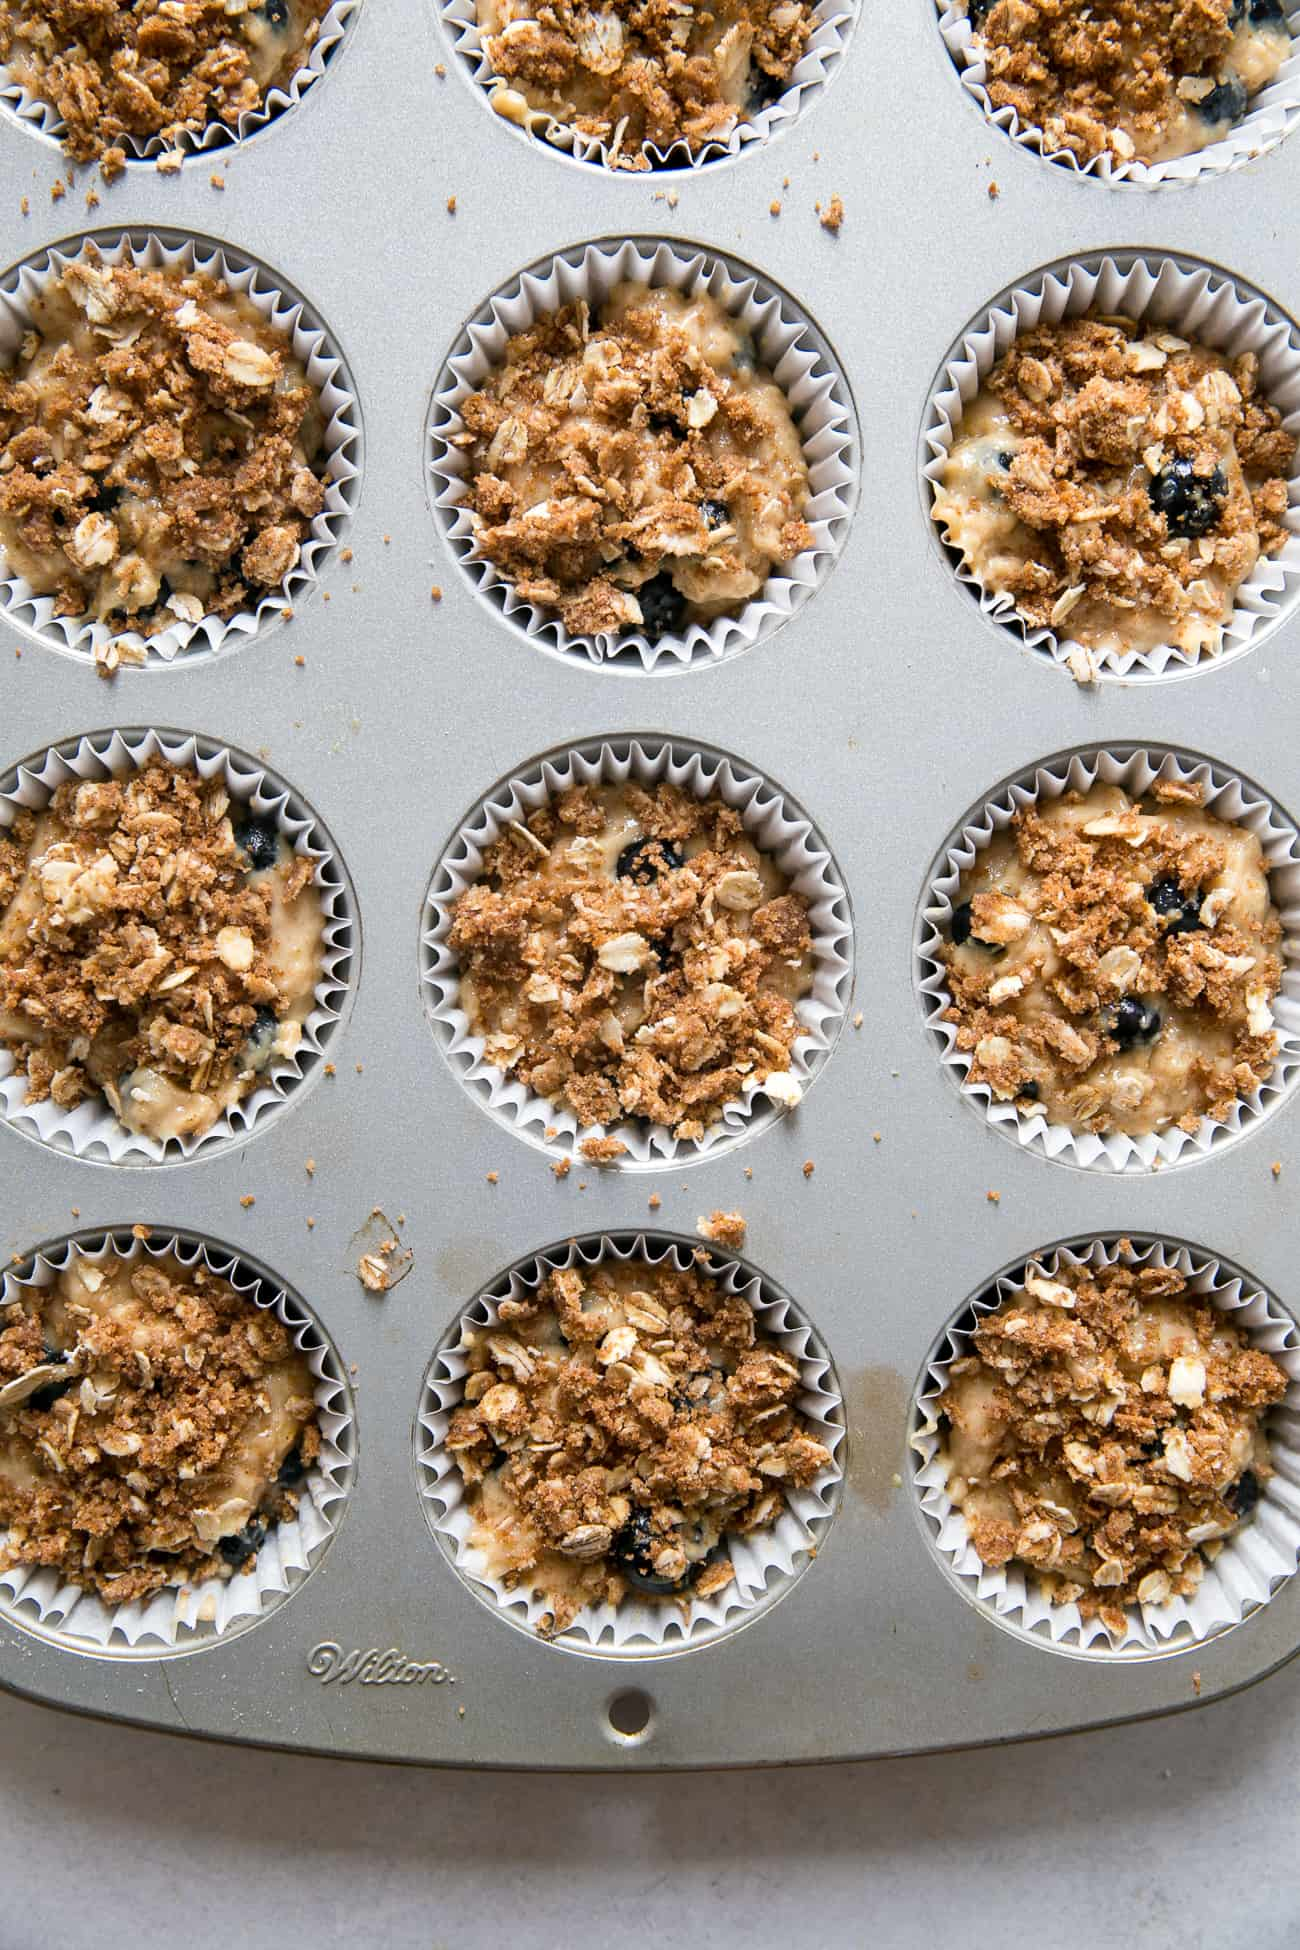 blueberry muffin batter with crumble sprinkled in each muffin cup